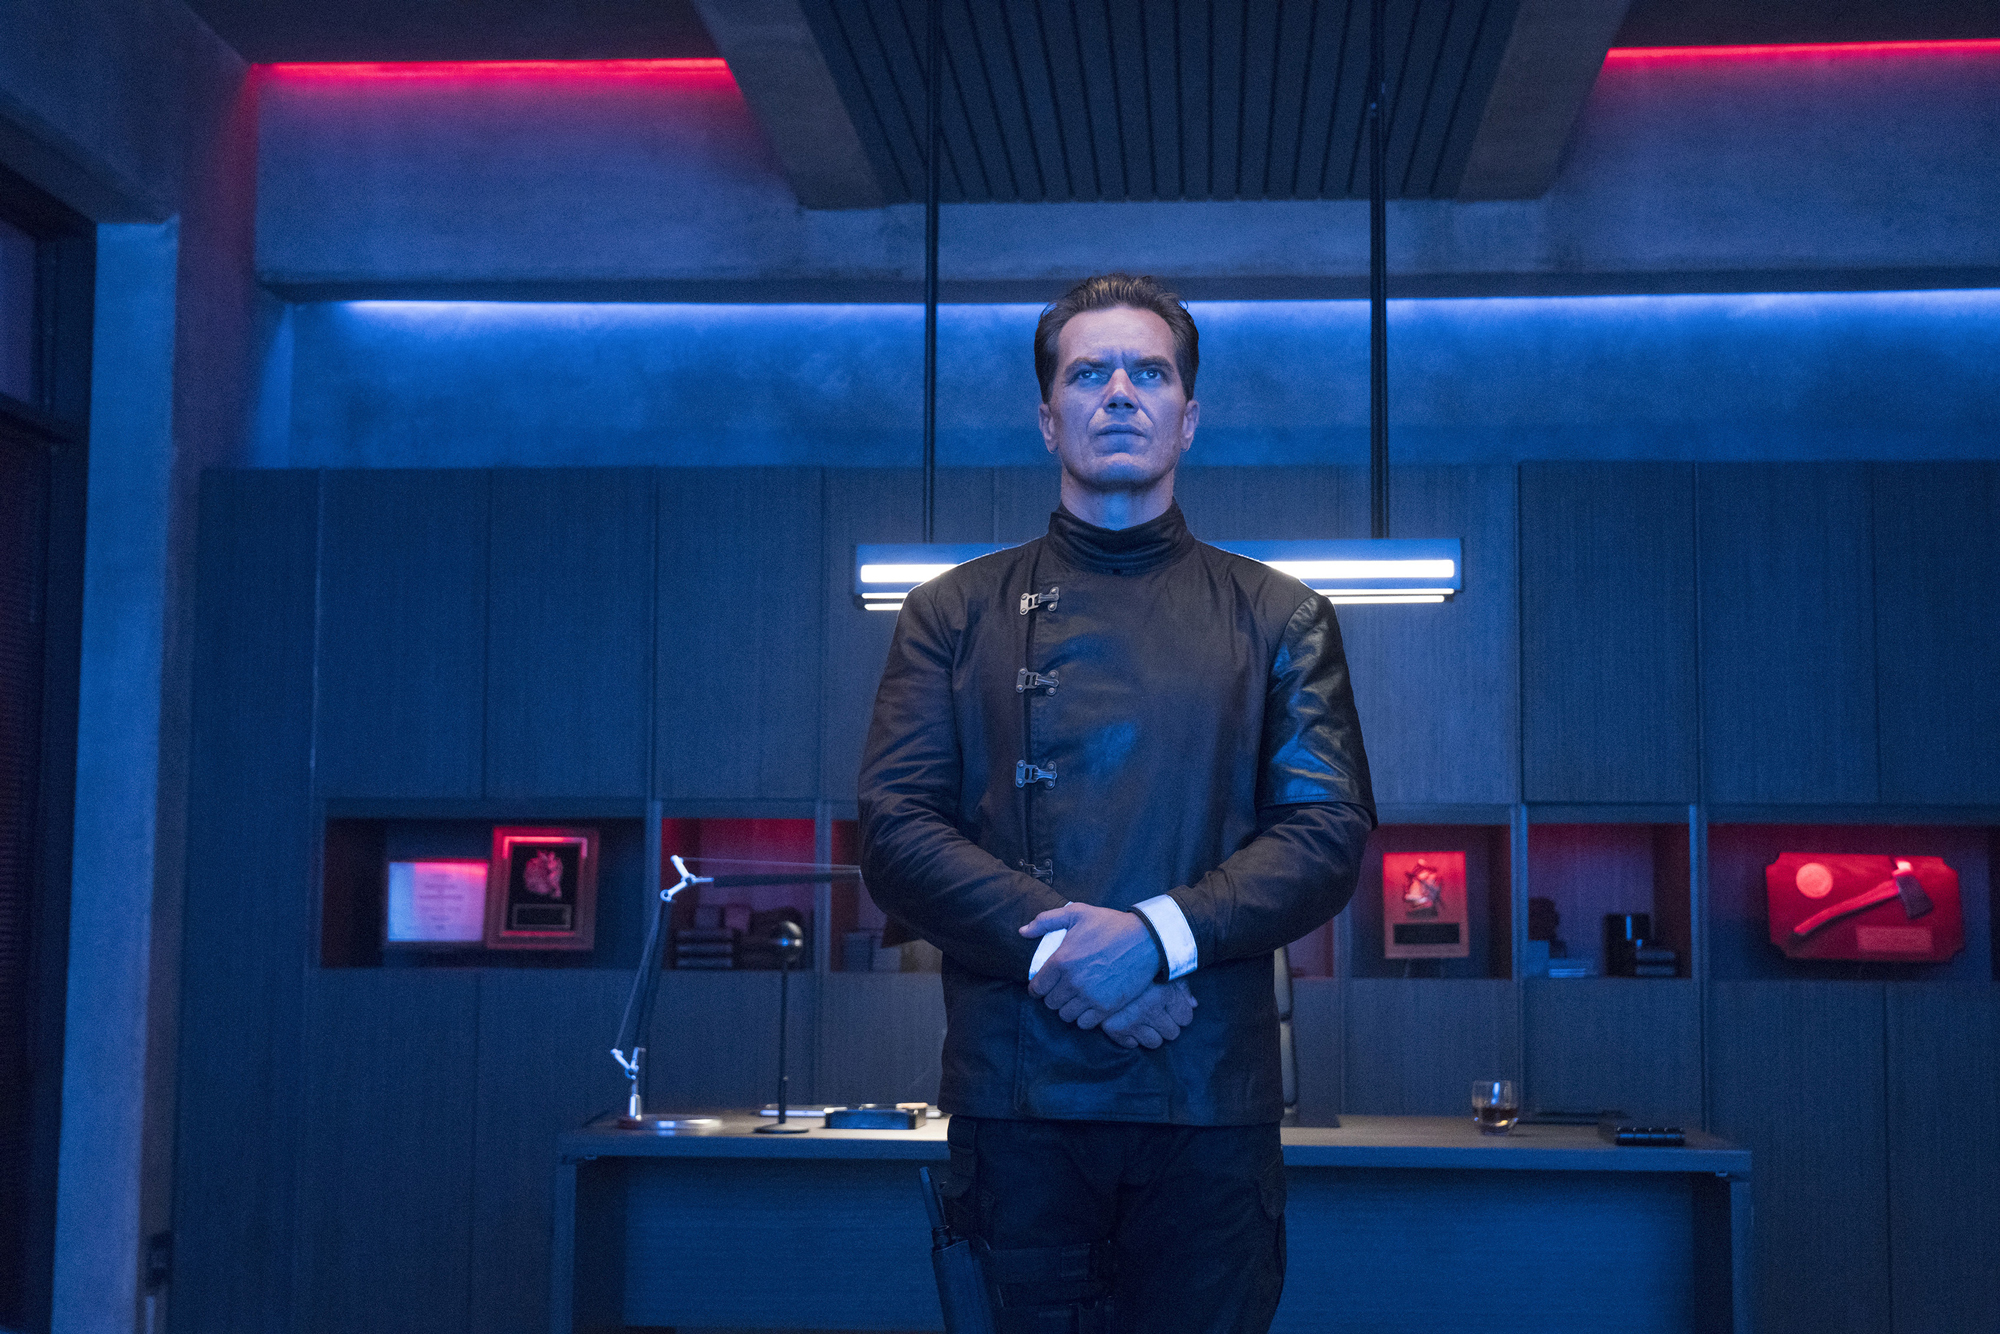 the futuristic concept in fahrenheit 451 by ray bradbury Hbo's new film adaptation of ray bradbury's novel fahrenheit 451 is the latest dystopian view on television of a grim future america  sight of real-world timelines and the concept of.